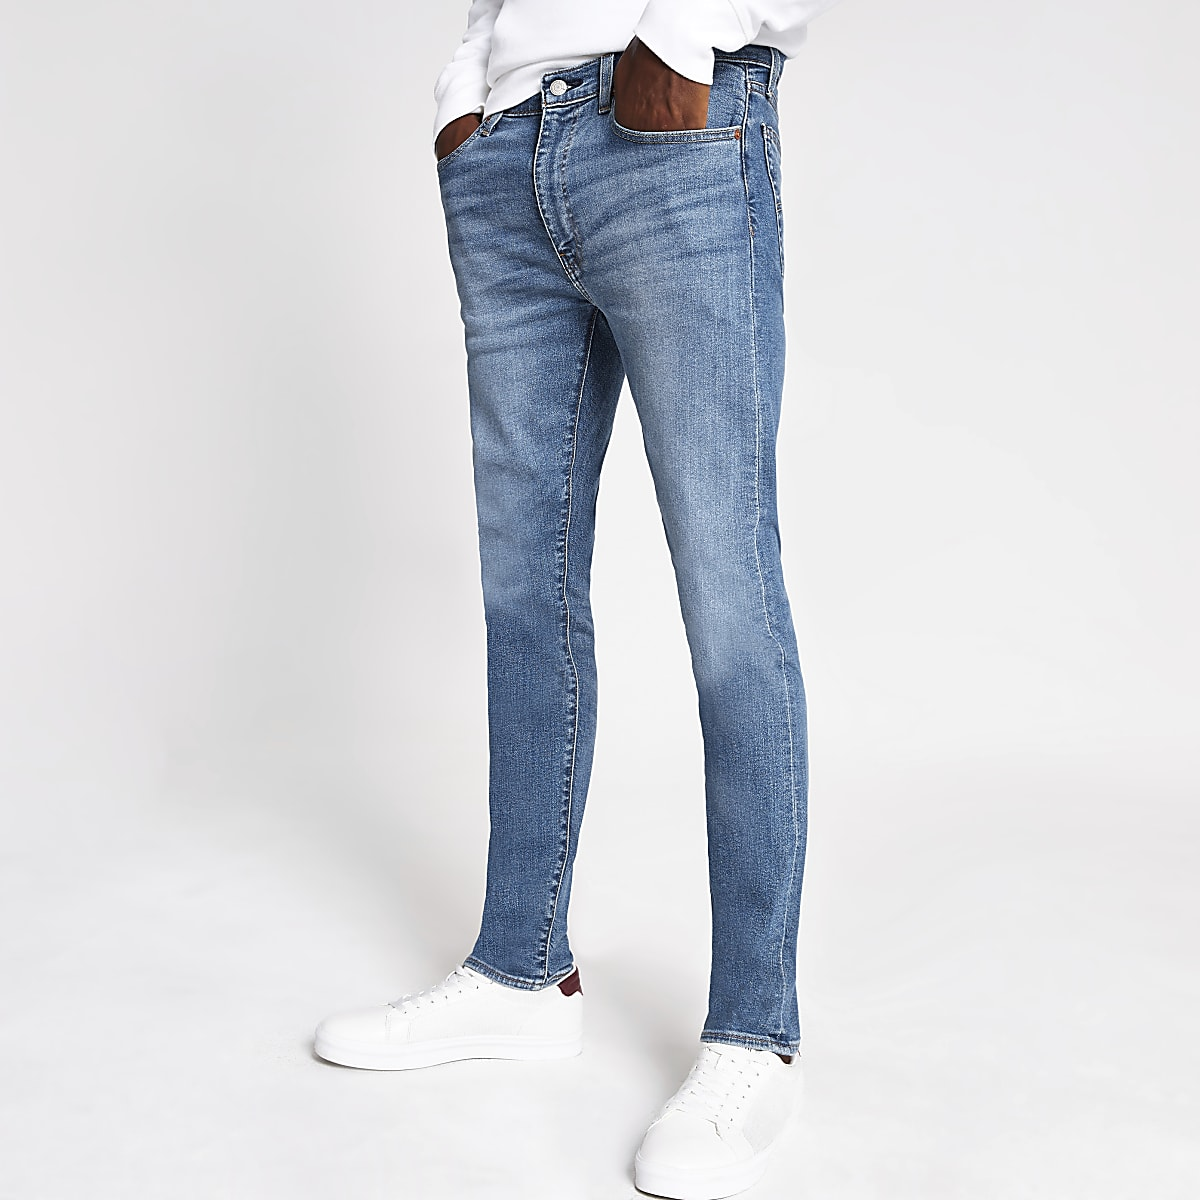 Levi's light blue 519 extreme skinny jeans